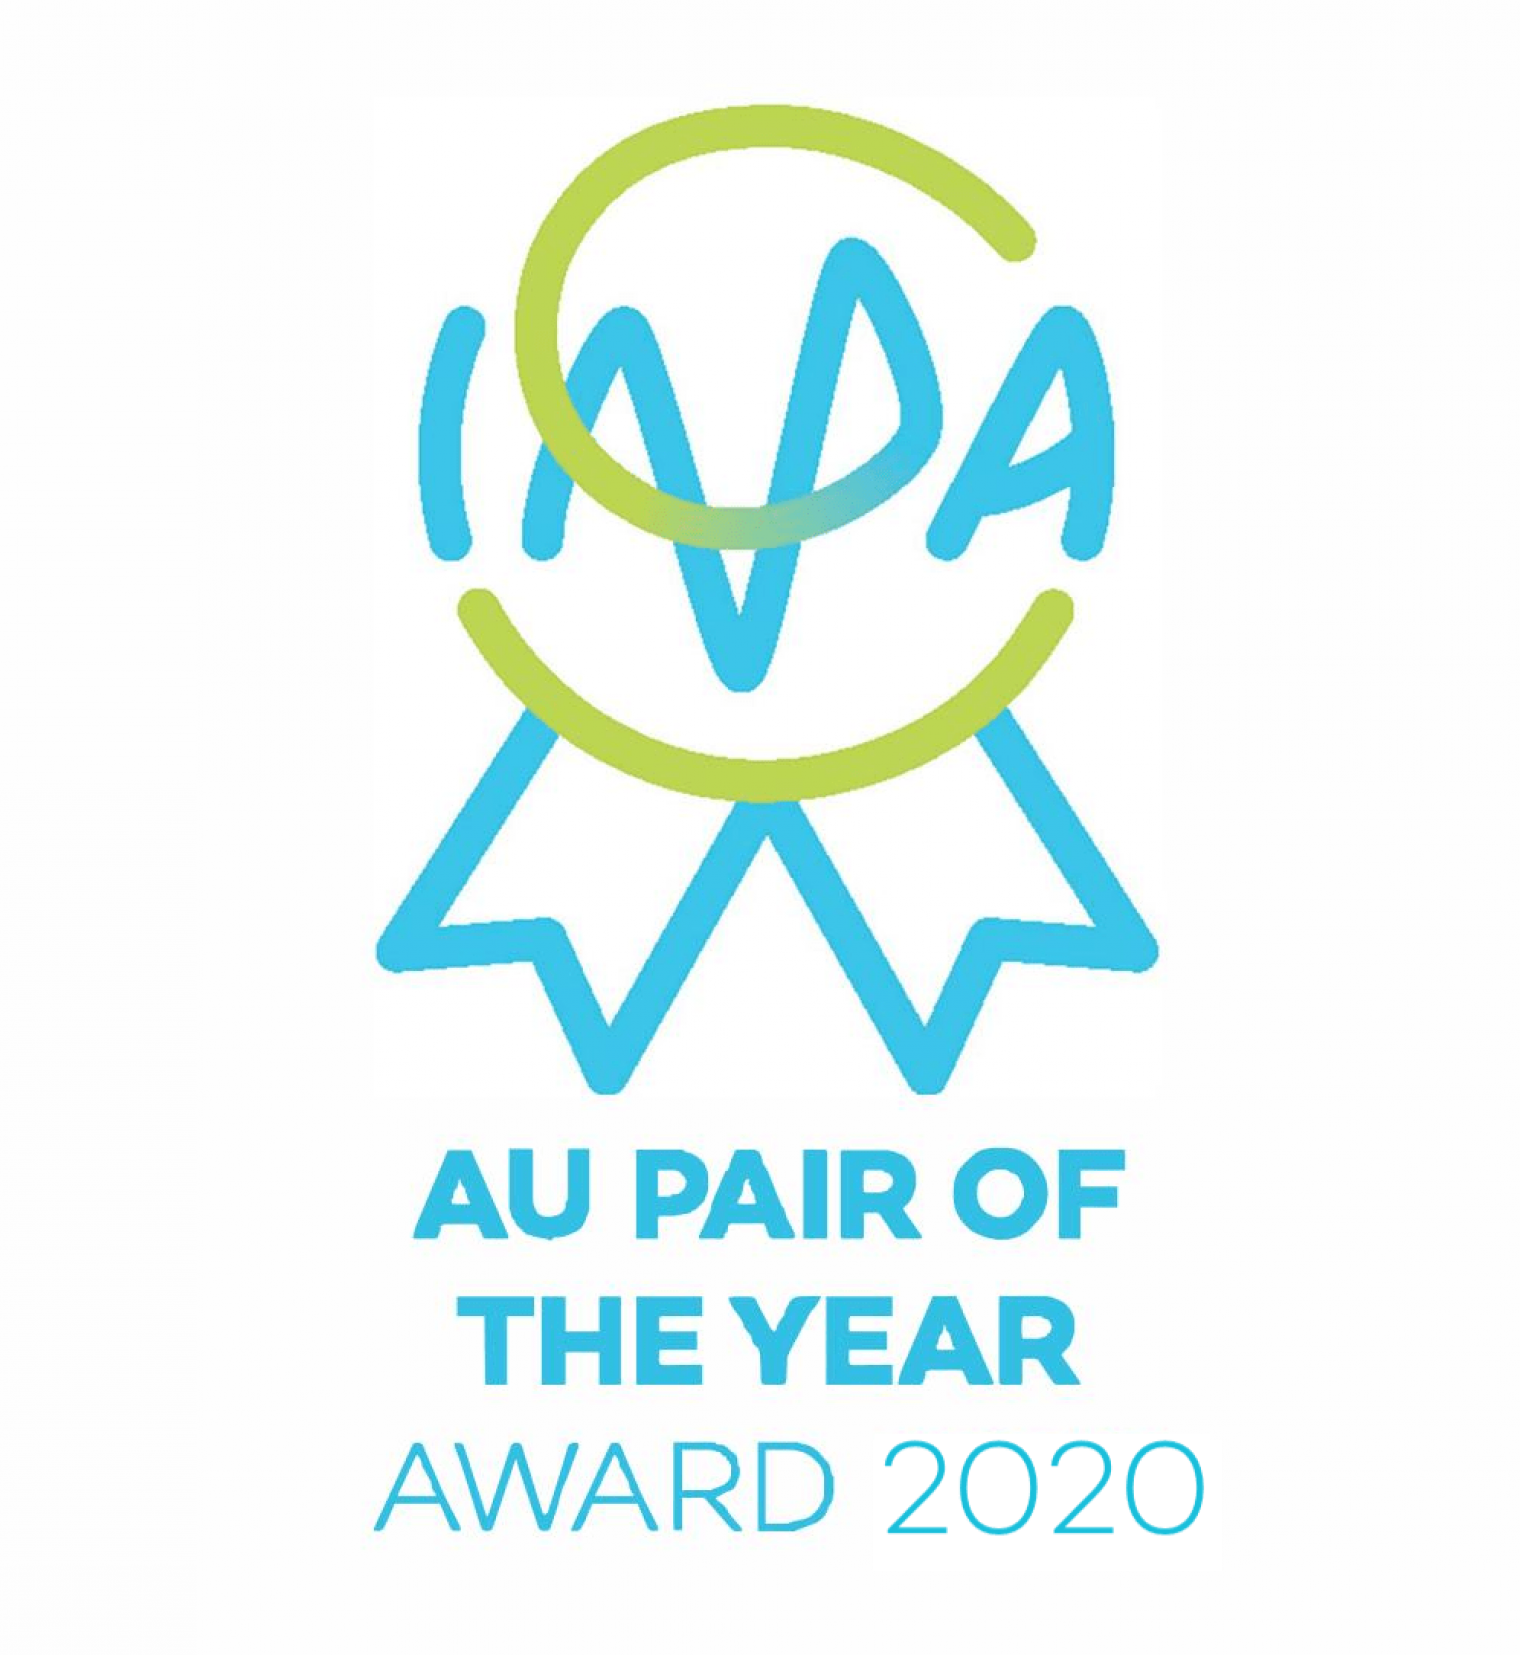 IAPA Au Pair of the Year Award 2020 – submit applications now!!